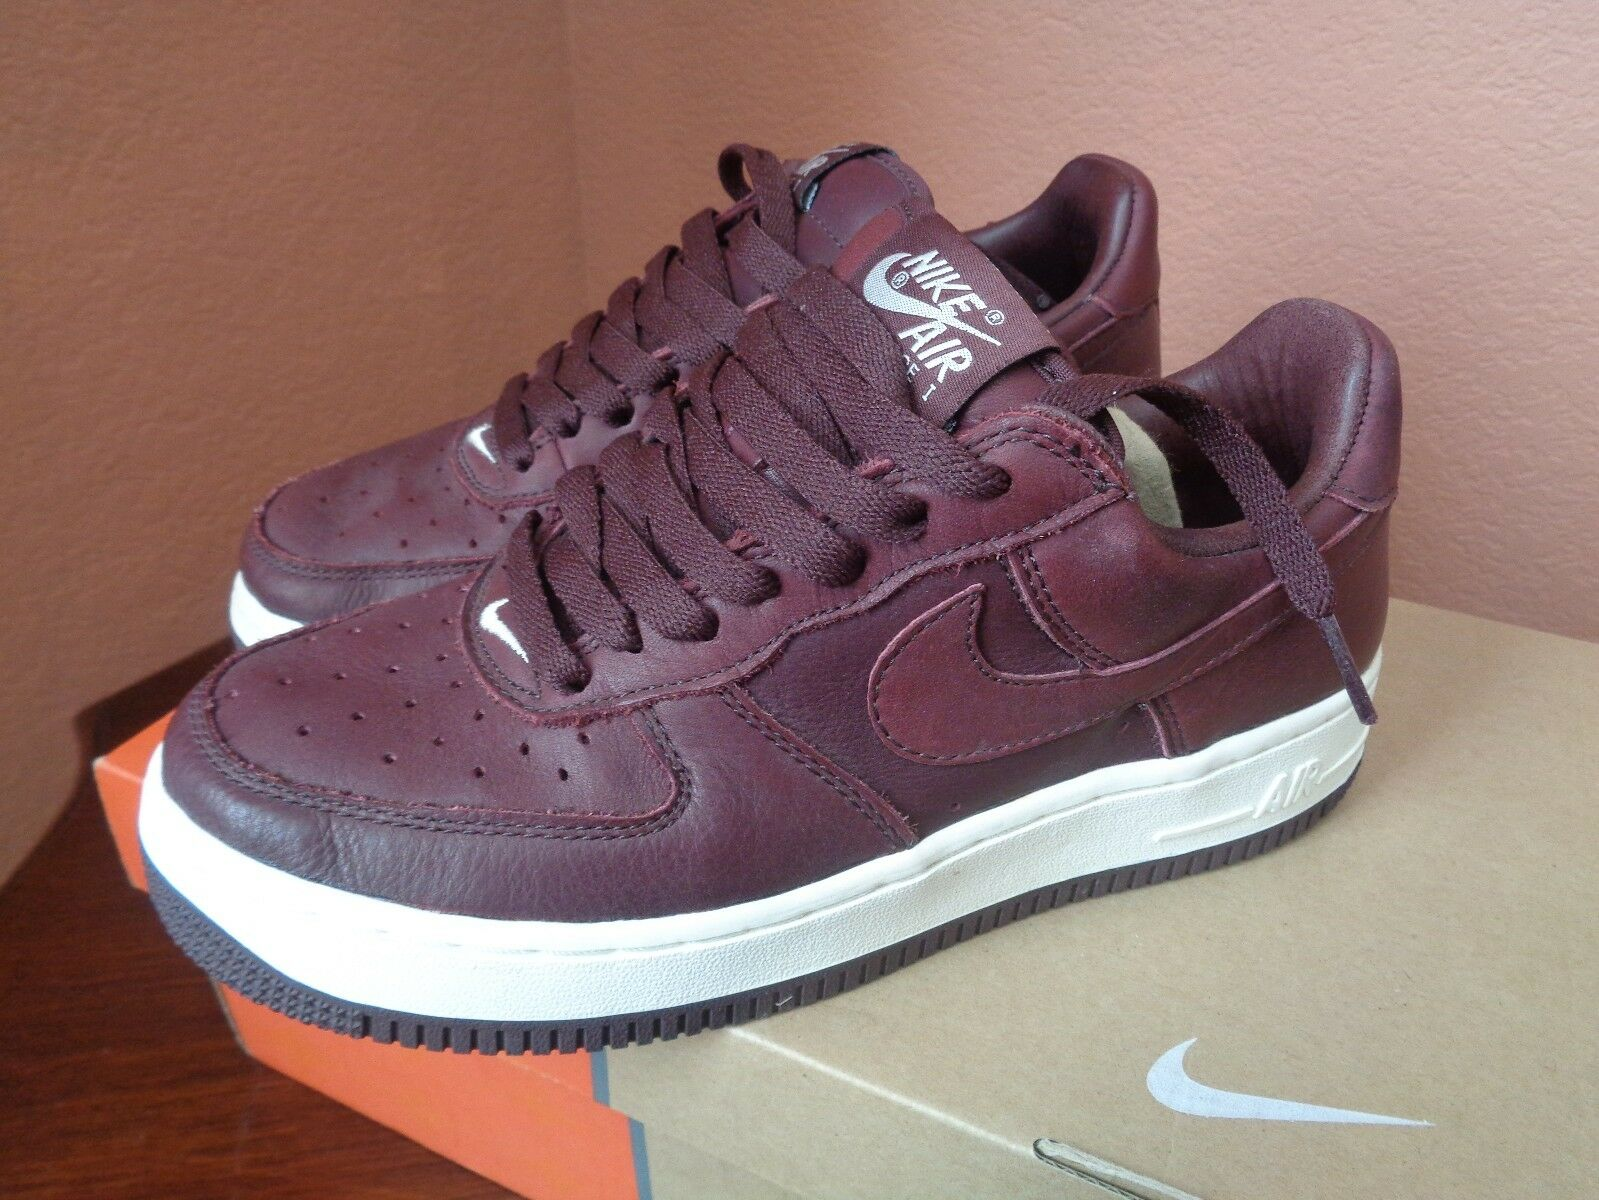 Nike Women's Air Force 1 Premium Redwood/ Redwood Sail Athletic Shoes Size 7